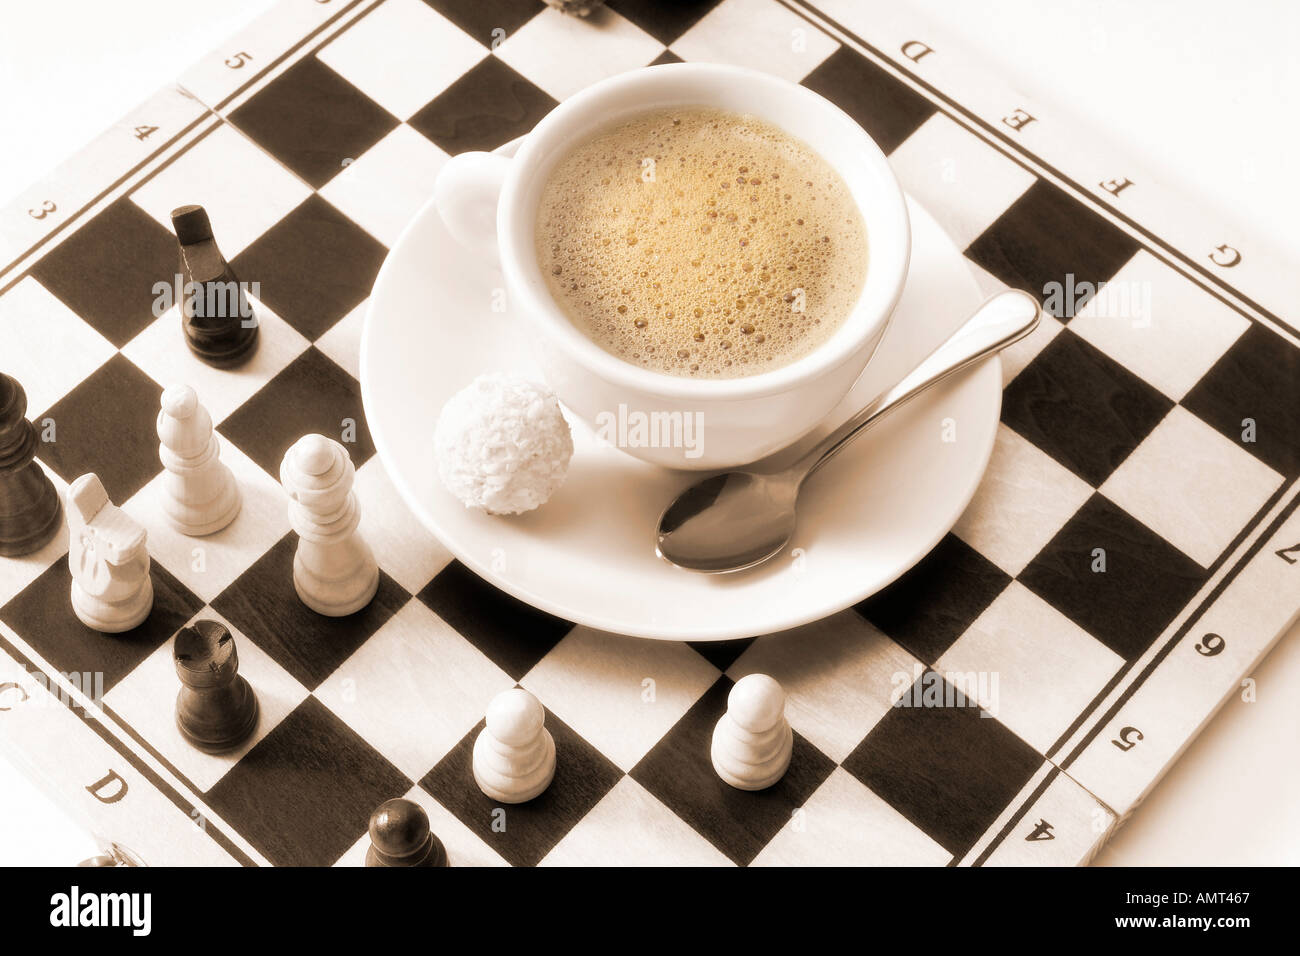 Cup of coffee on chess board - Stock Image